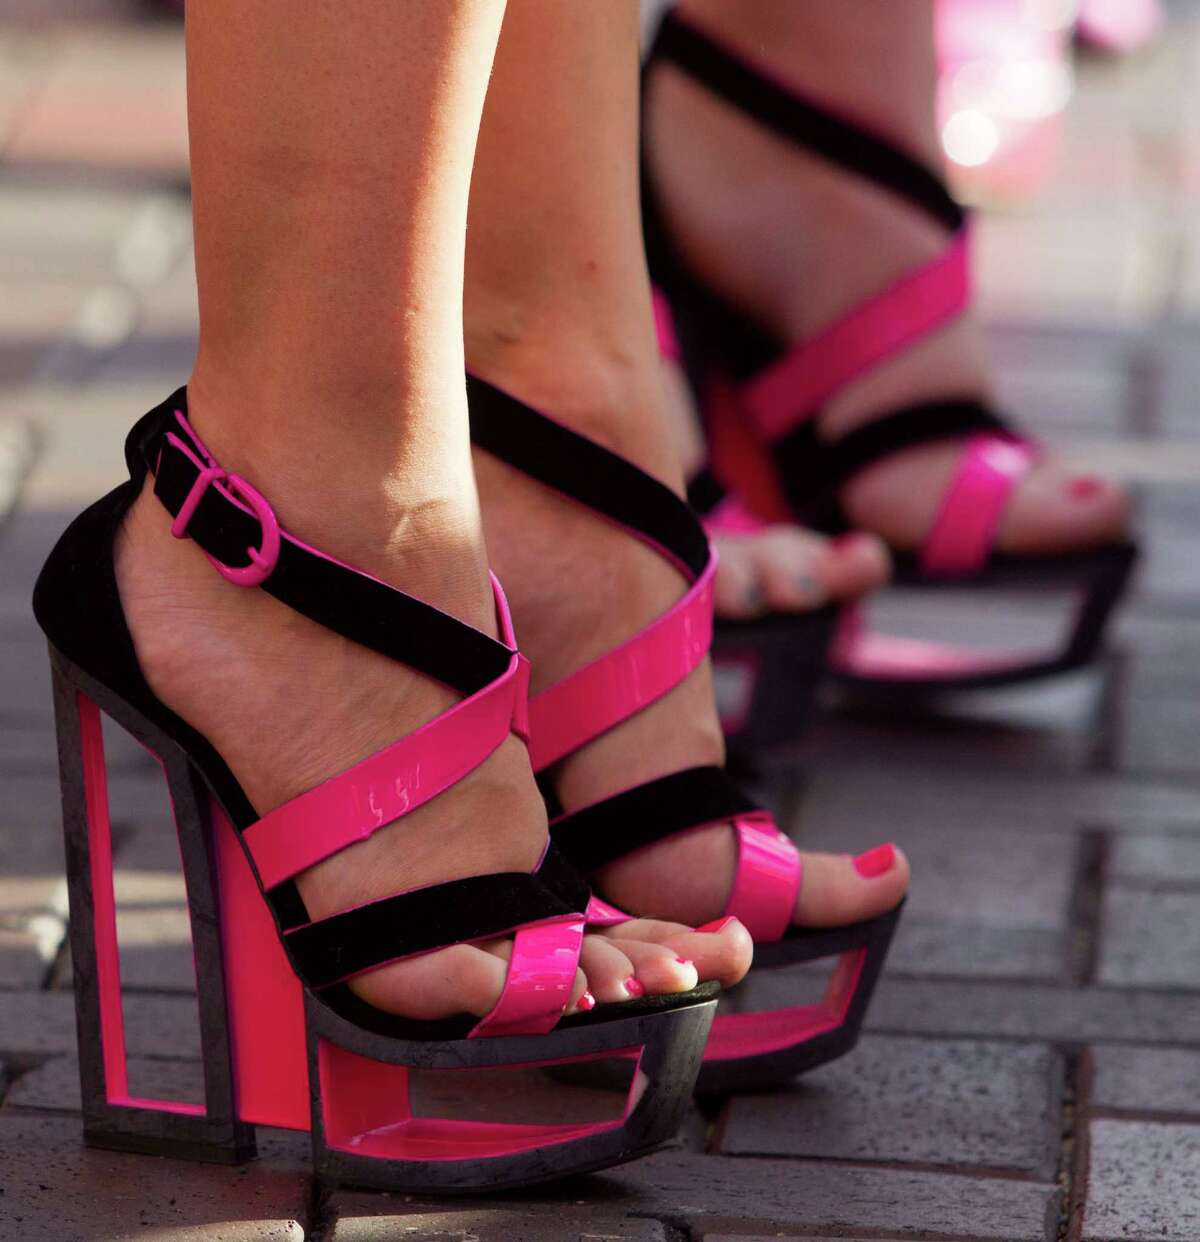 Participants show off their high heels during the third annual Houston Stiletto Stampede at Town Center on Saturday, Sept. 28, 2013, in Sugar Land. The Stiletto Stampede is a 100-yard high heel dash with a mission to encourage young women and men to understand the risks of breast cancer and empower them to prevent the disease by utilizing overall breast self-awareness through early detection and screening methods.